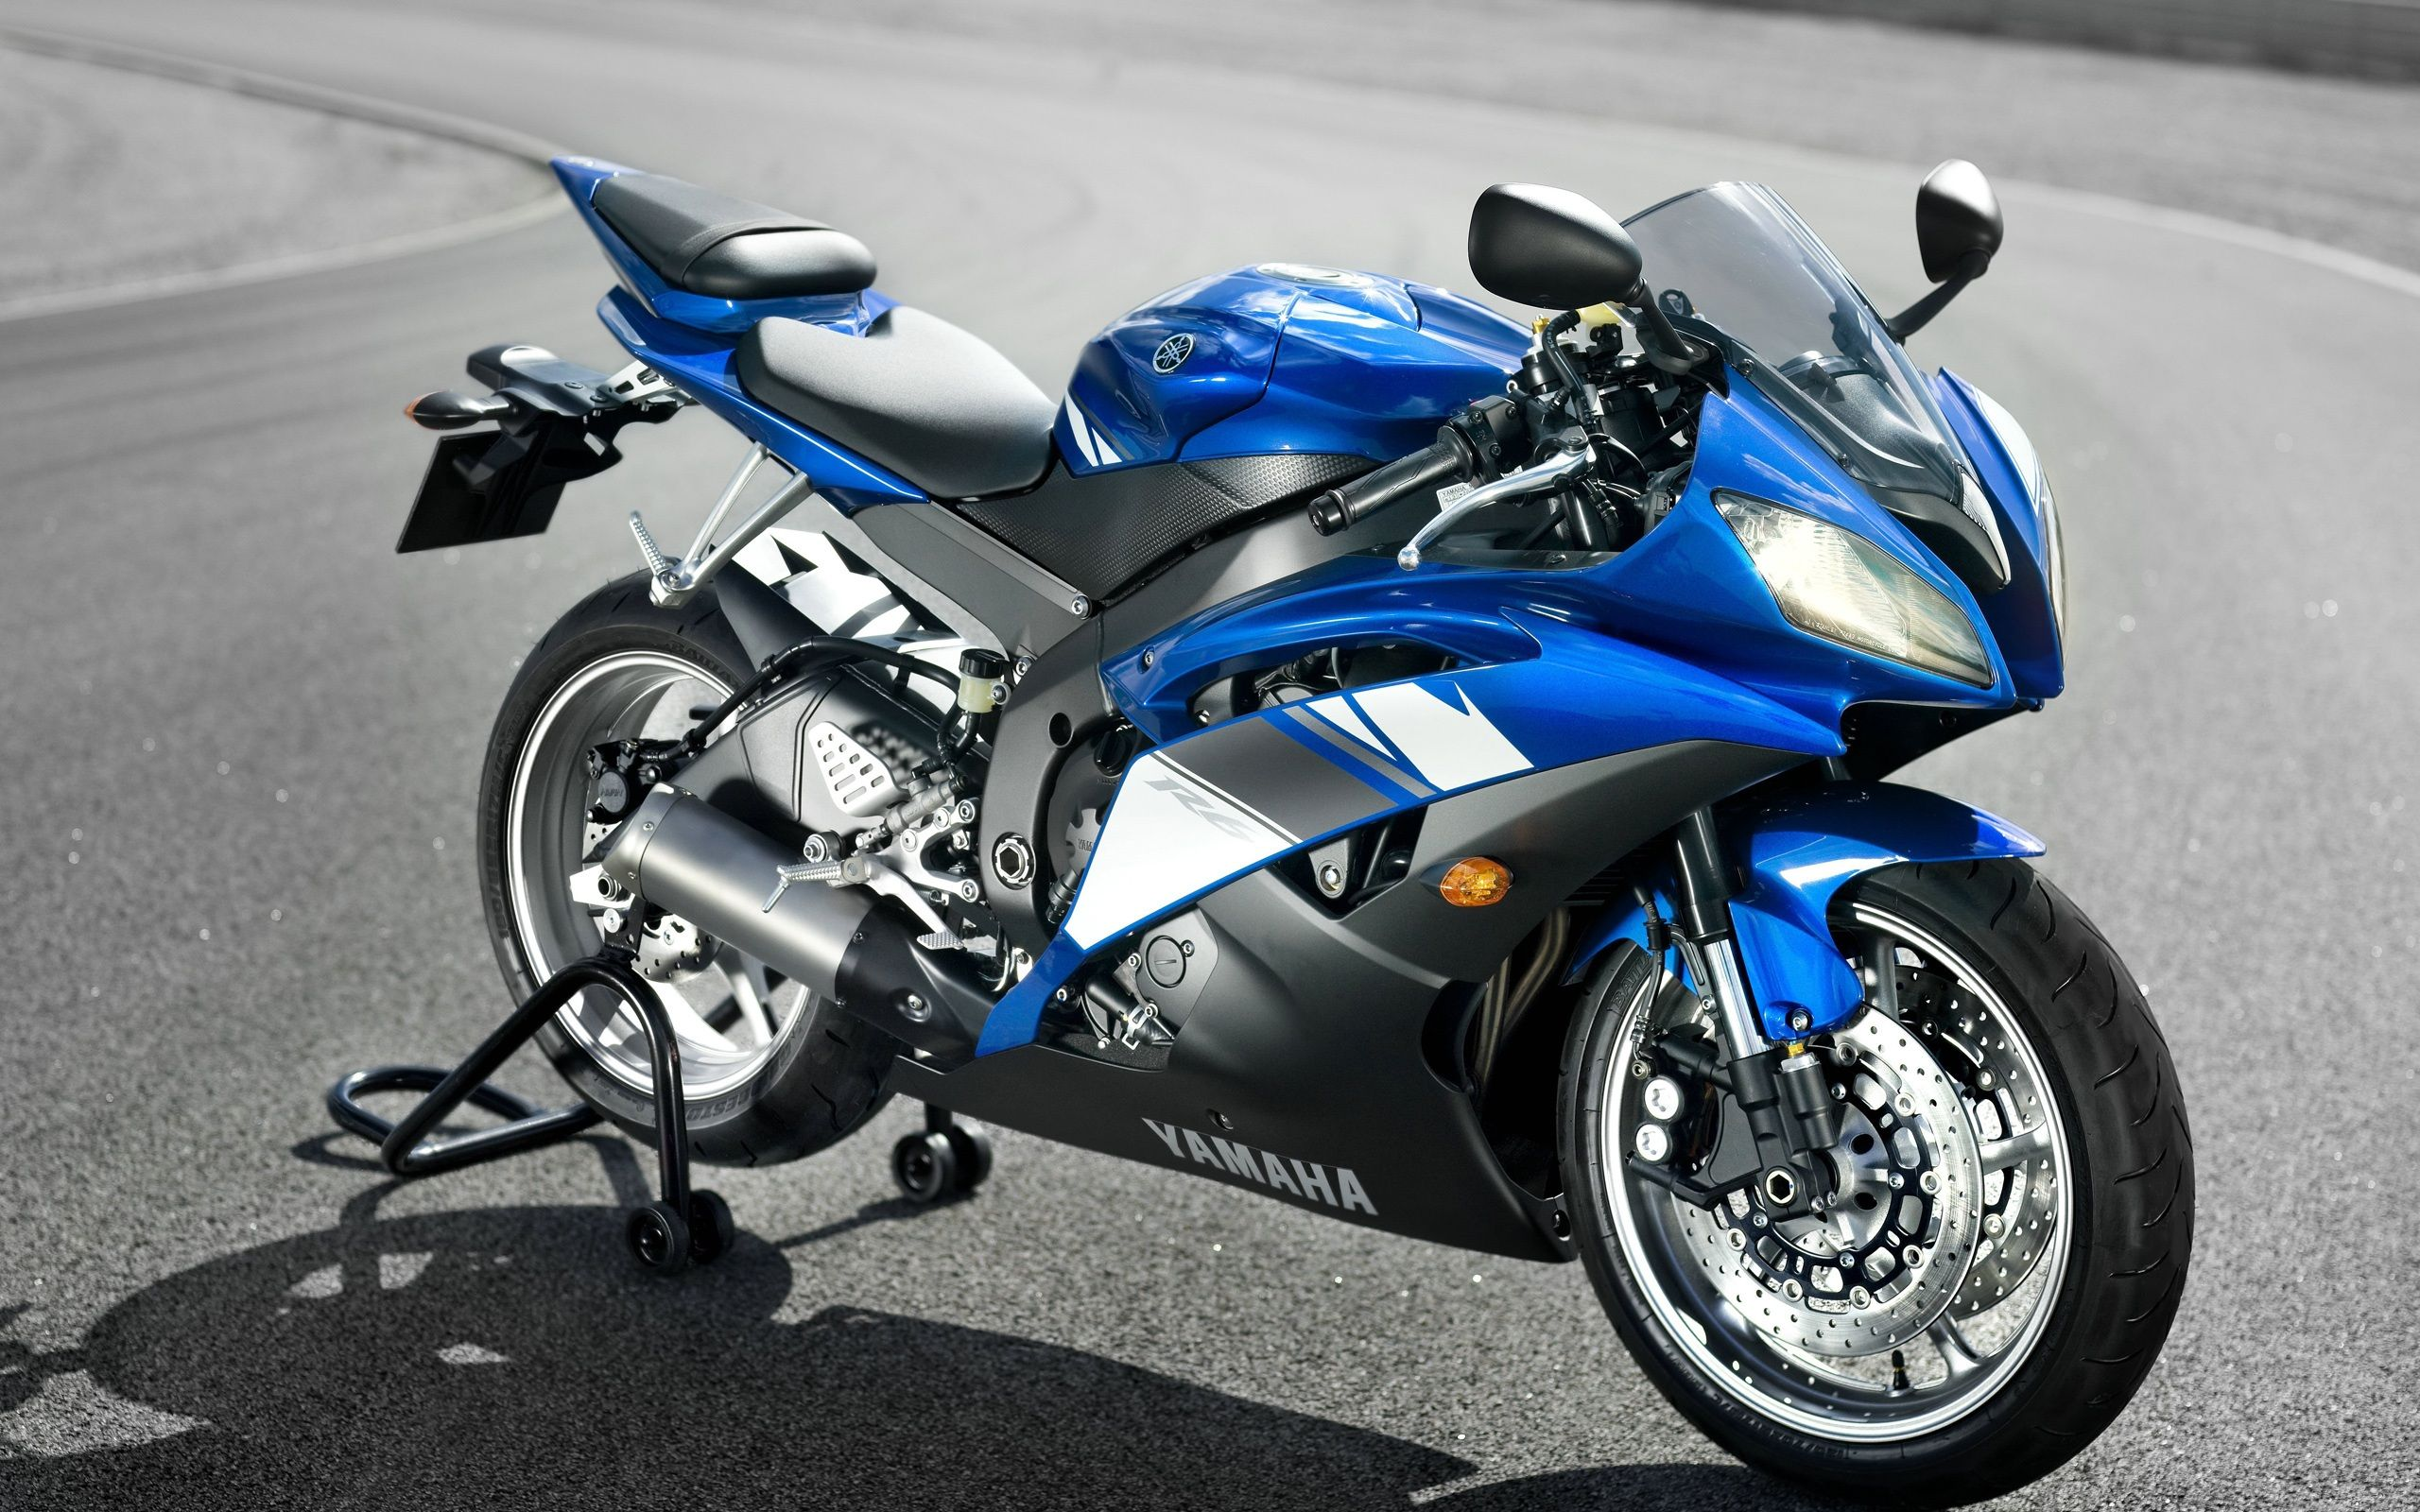 20 Things You Didn't Know About Yamaha Motorcycles